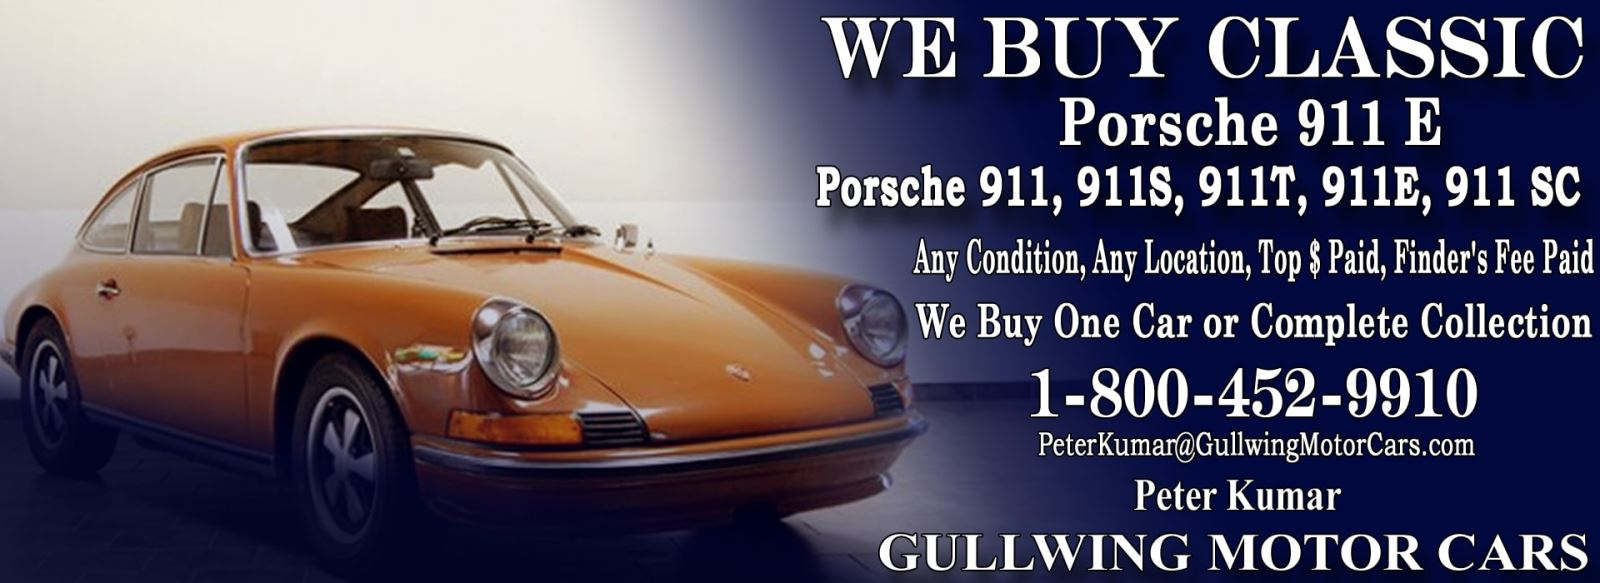 Classic Porsche 911E for sale, we buy vintage Porsche 911E. Call Peter Kumar. Gullwing Motor